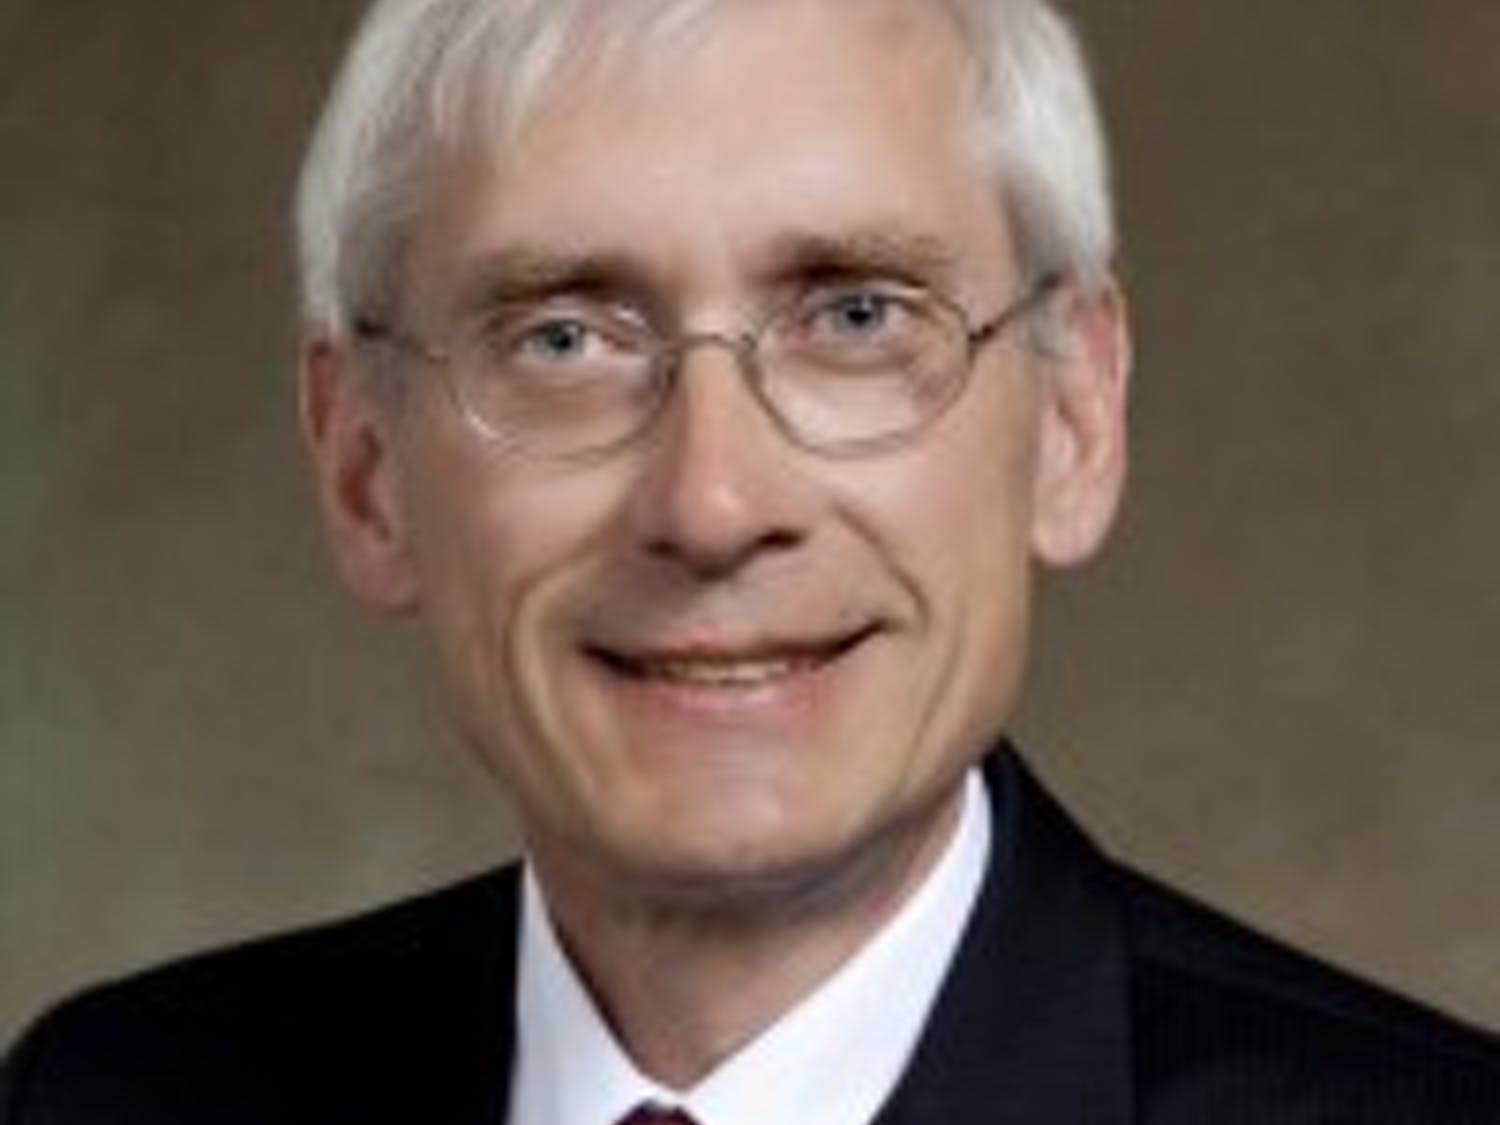 State Superintendent Tony Evers addressed educators, policymakers and students in his annual State of Education address at the Capitol Thursday.